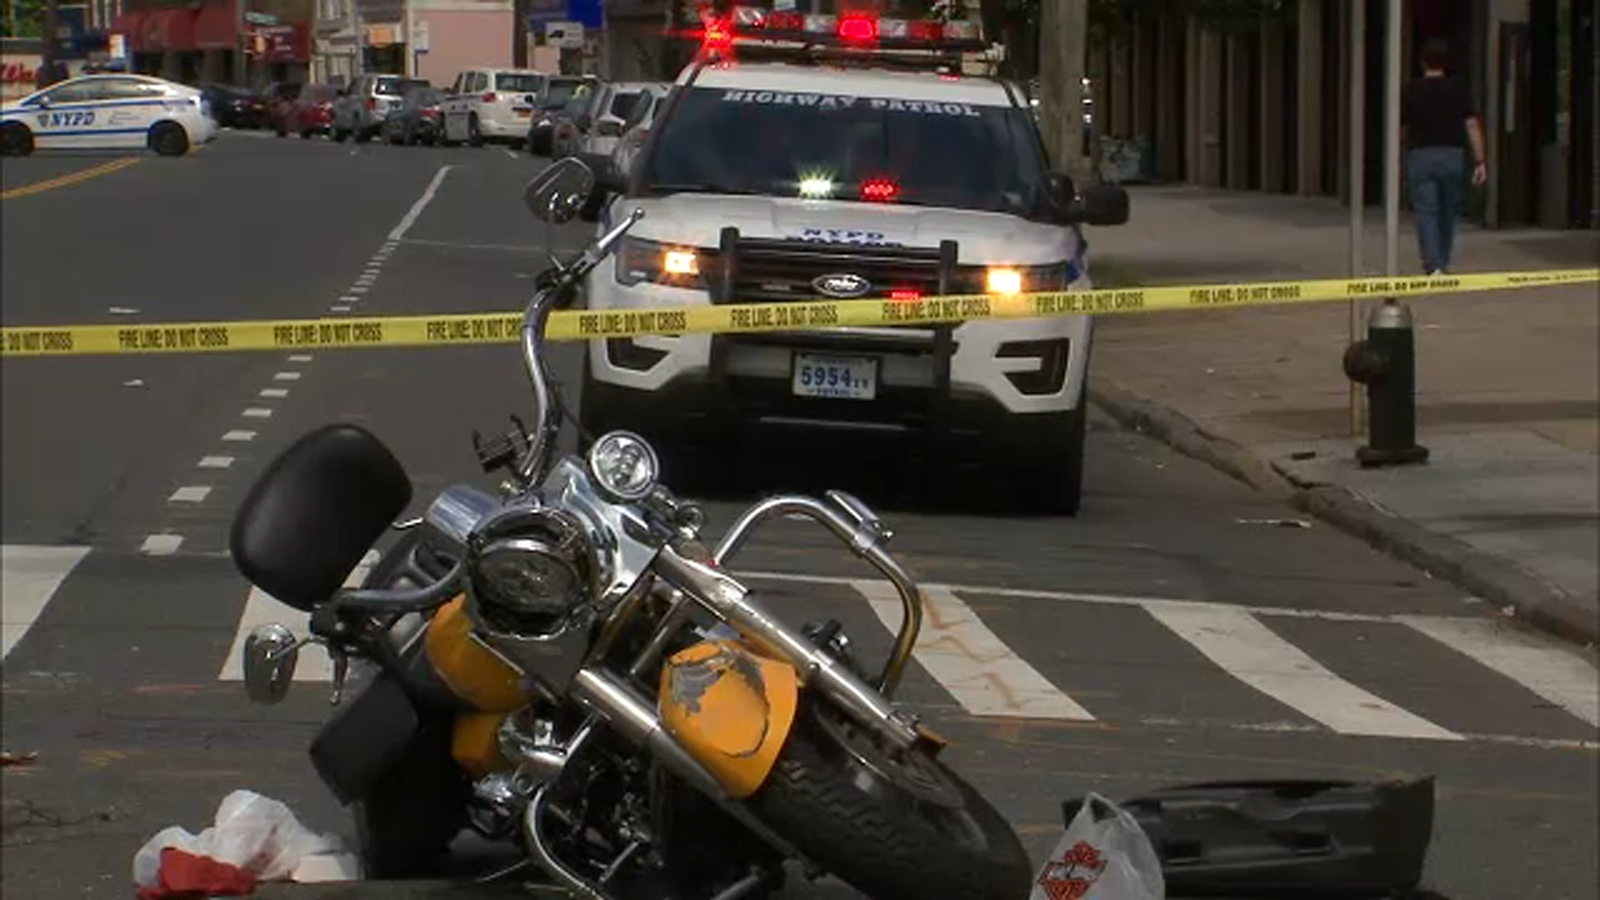 Off-duty NYPD officer critically injured in motorcycle crash in Pelham Bay